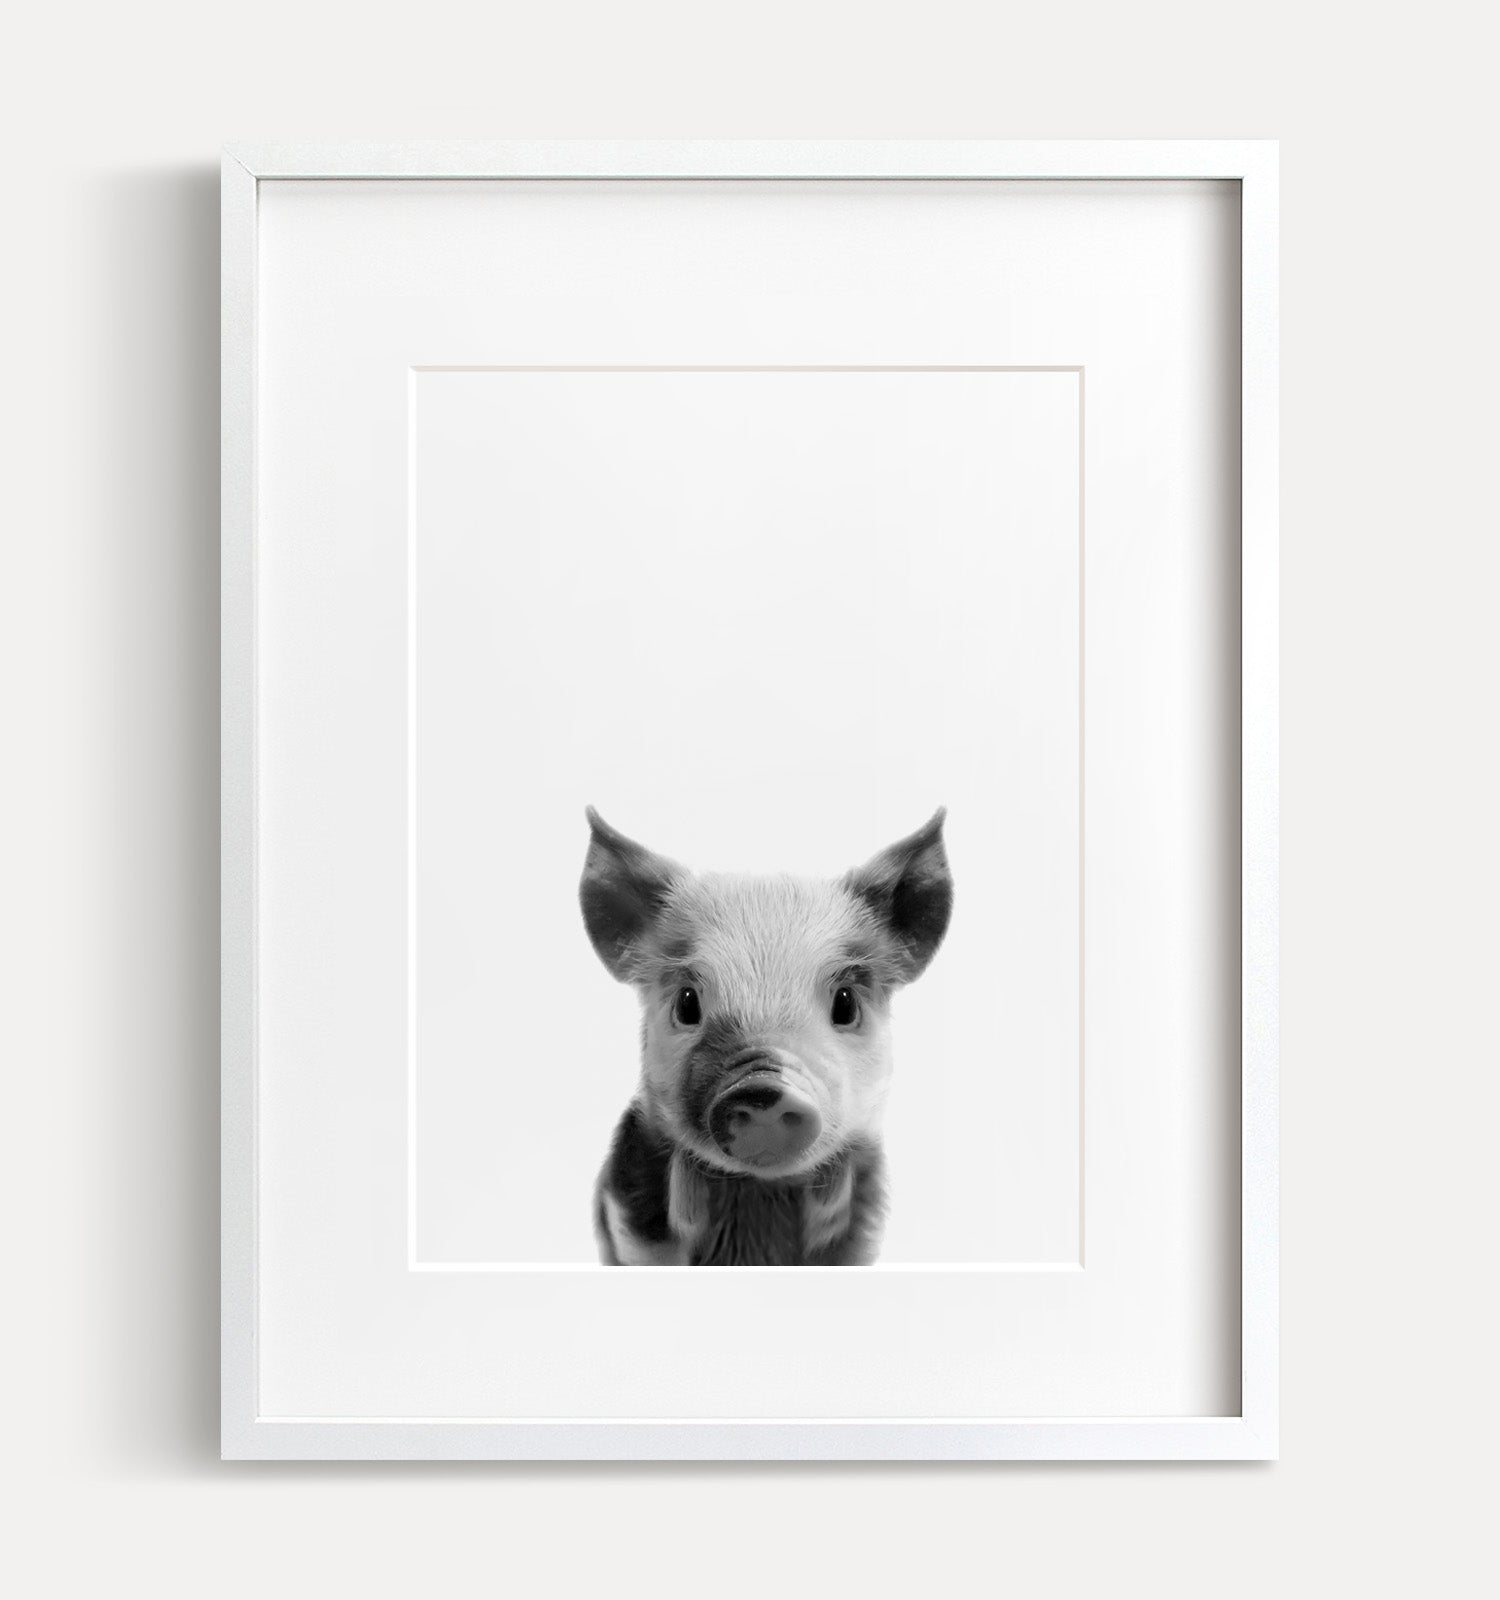 Baby Pig Printable Art - Black and White